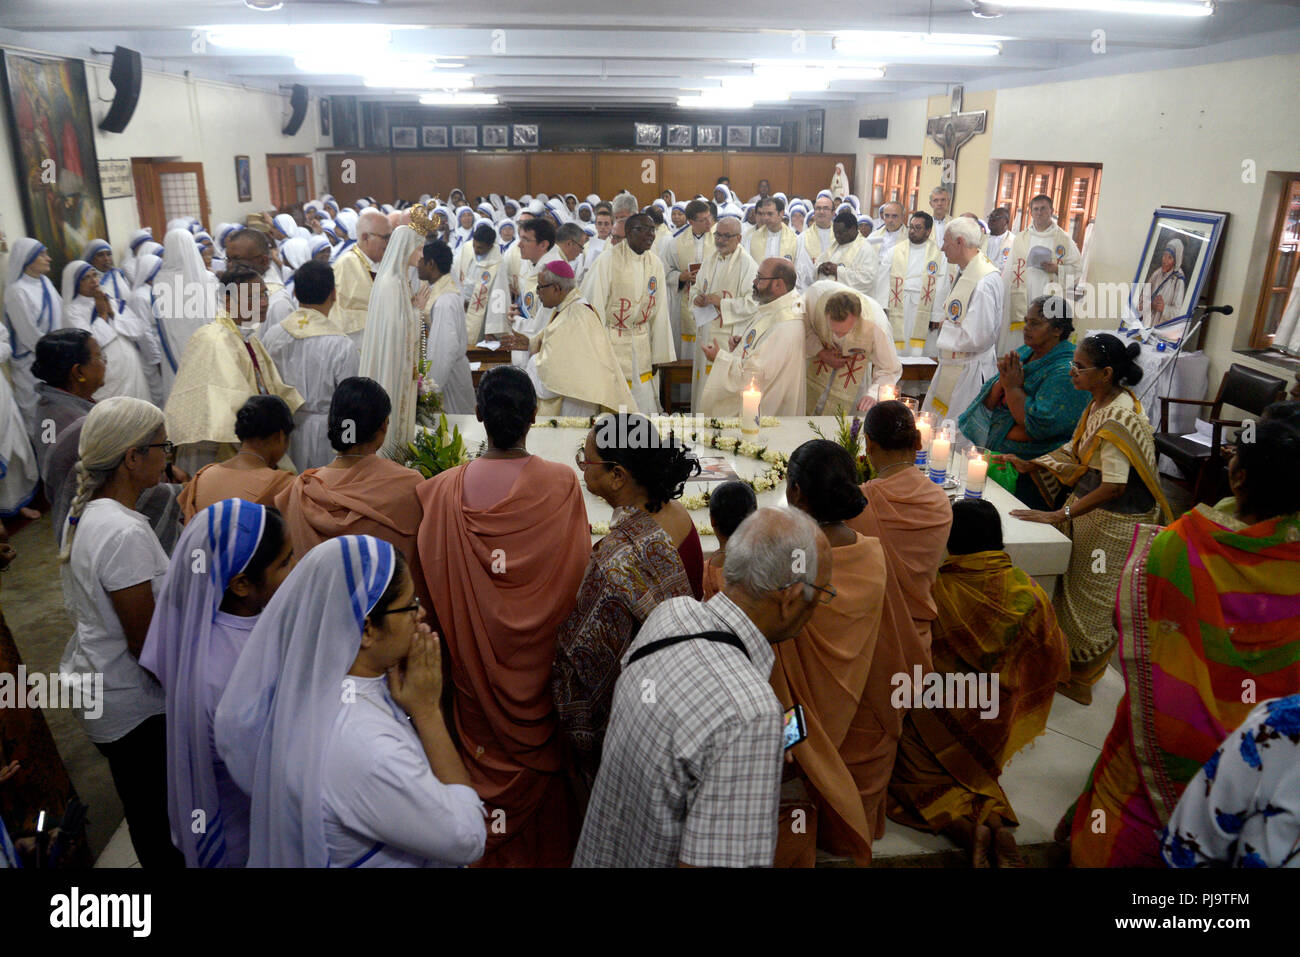 Kolkata, India  05th Sep, 2018  Nuns, Catholic priest and